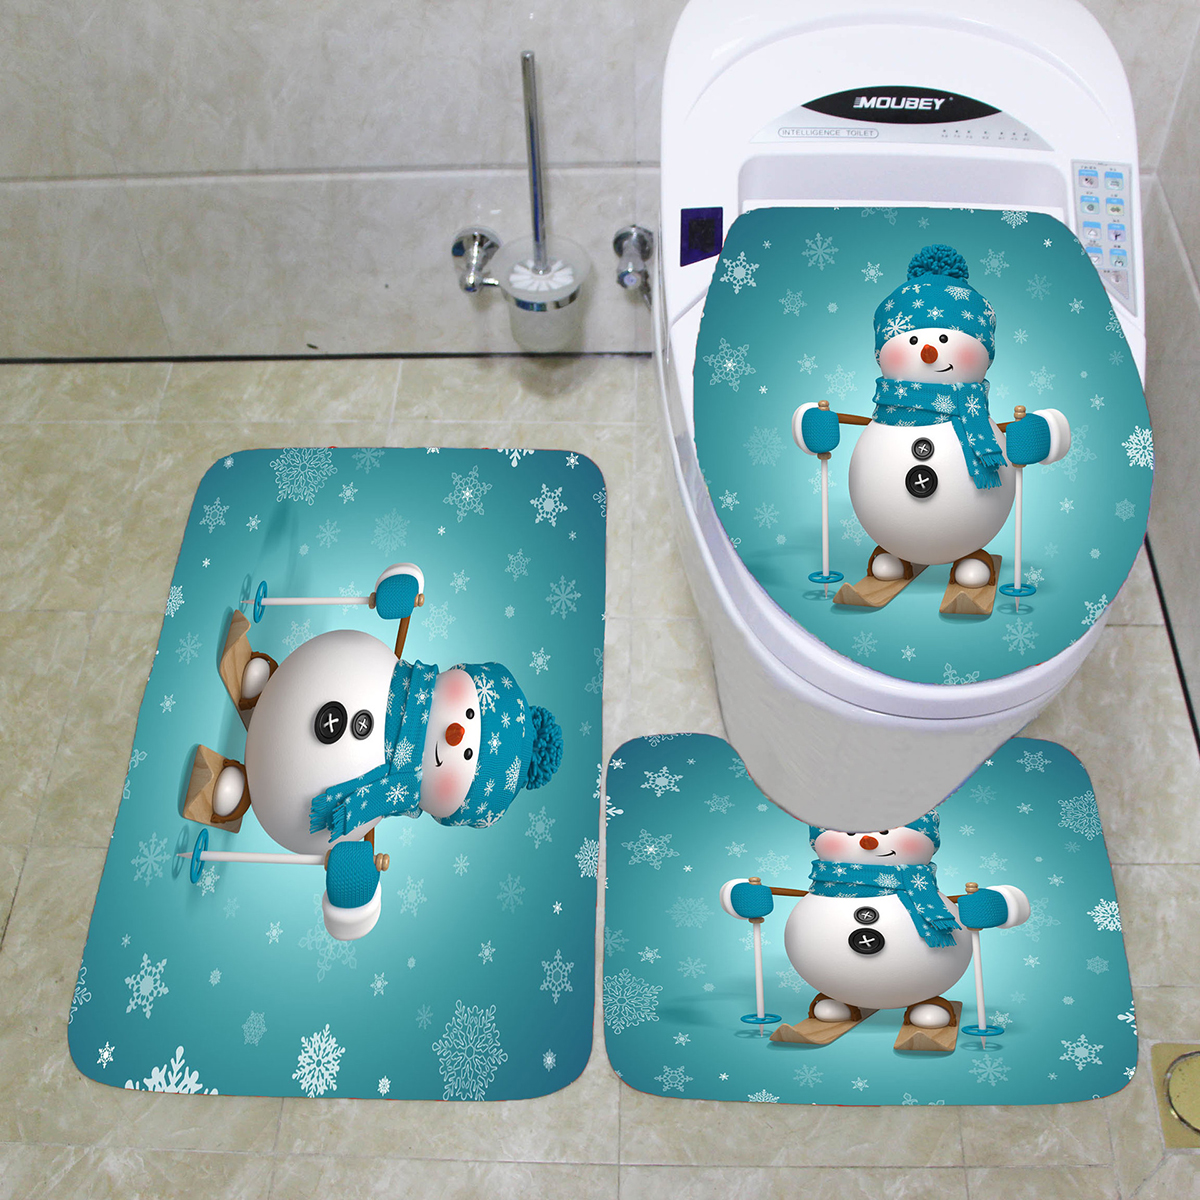 Outstanding 3Pcs Christmas Toilet Seat Covers Bathroom Mat Bathroom Carpet Set Absorbent Bath Rugs Bralicious Painted Fabric Chair Ideas Braliciousco